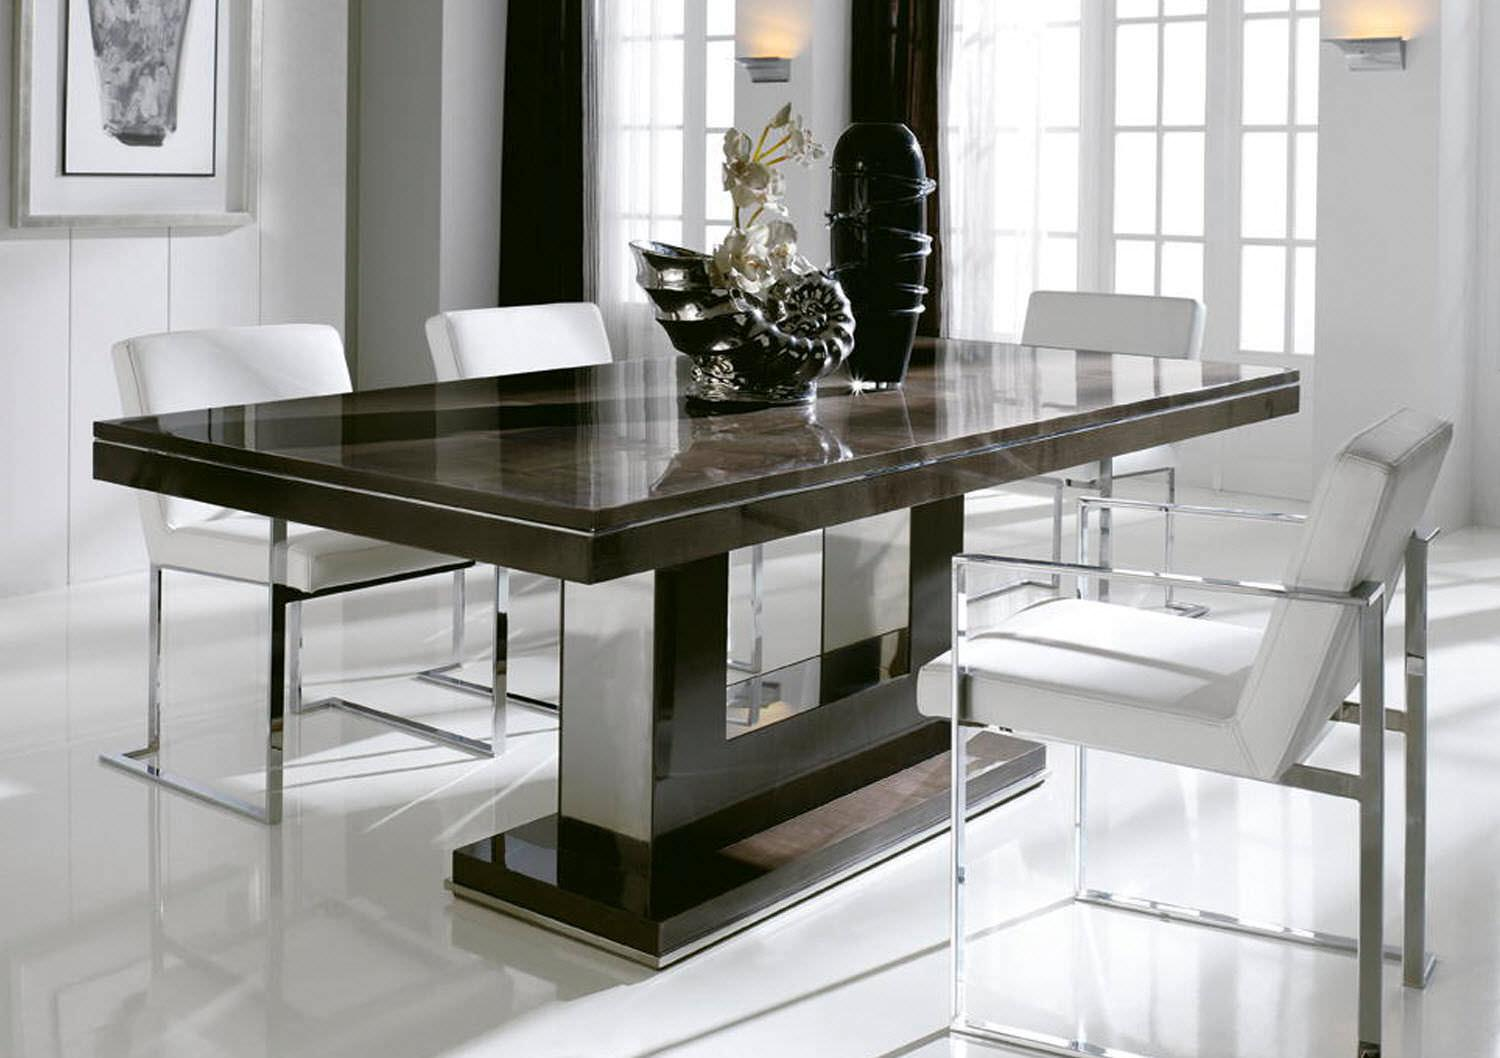 Image of: Modern Kitchen Table Ideas